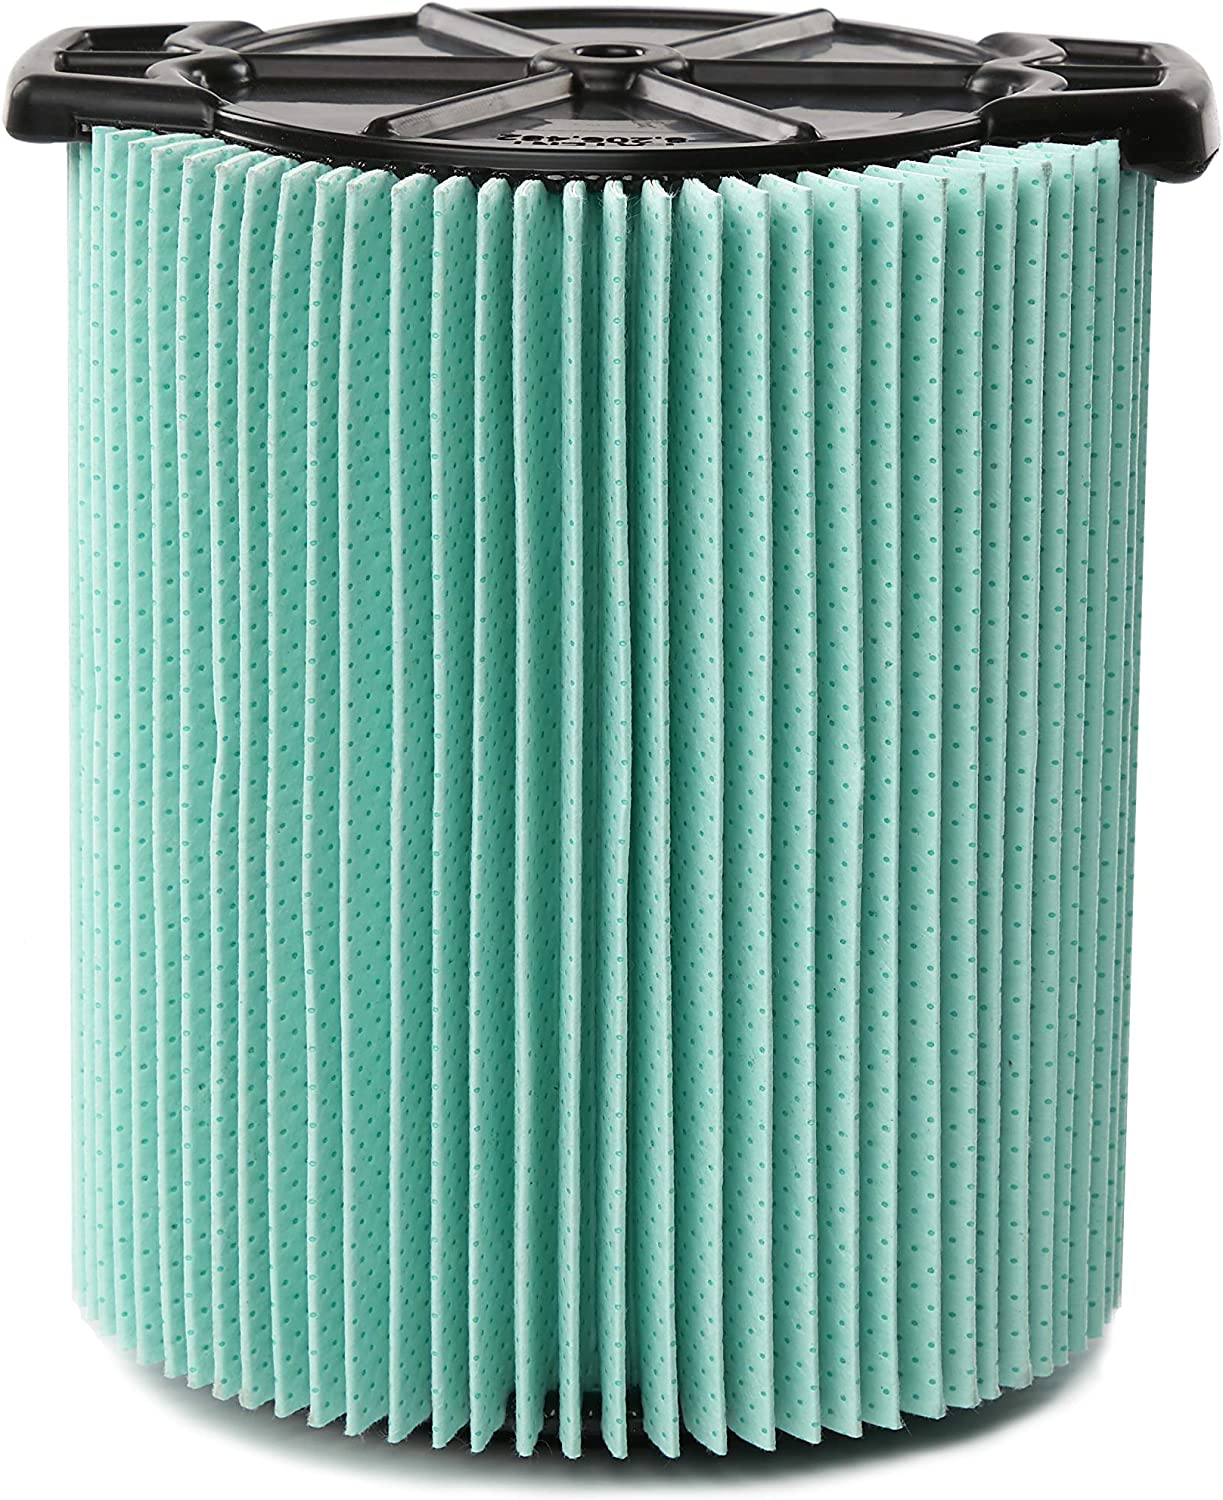 CRAFTSMAN 38753 HEPA Media Wet/Dry Vac Filter for 5 to 20 Gallon Shop Vacuums